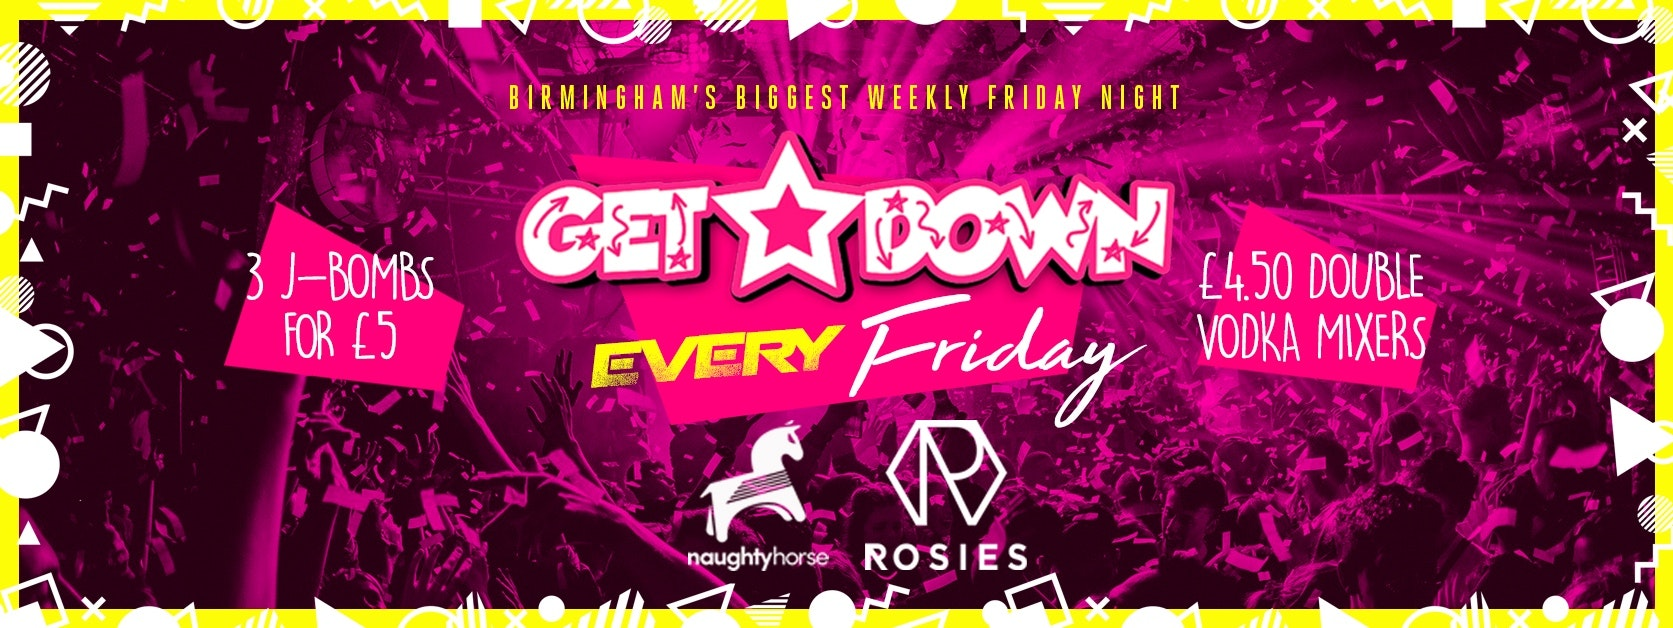 Get Down Fridays – Rosies! [Naughty Horse]